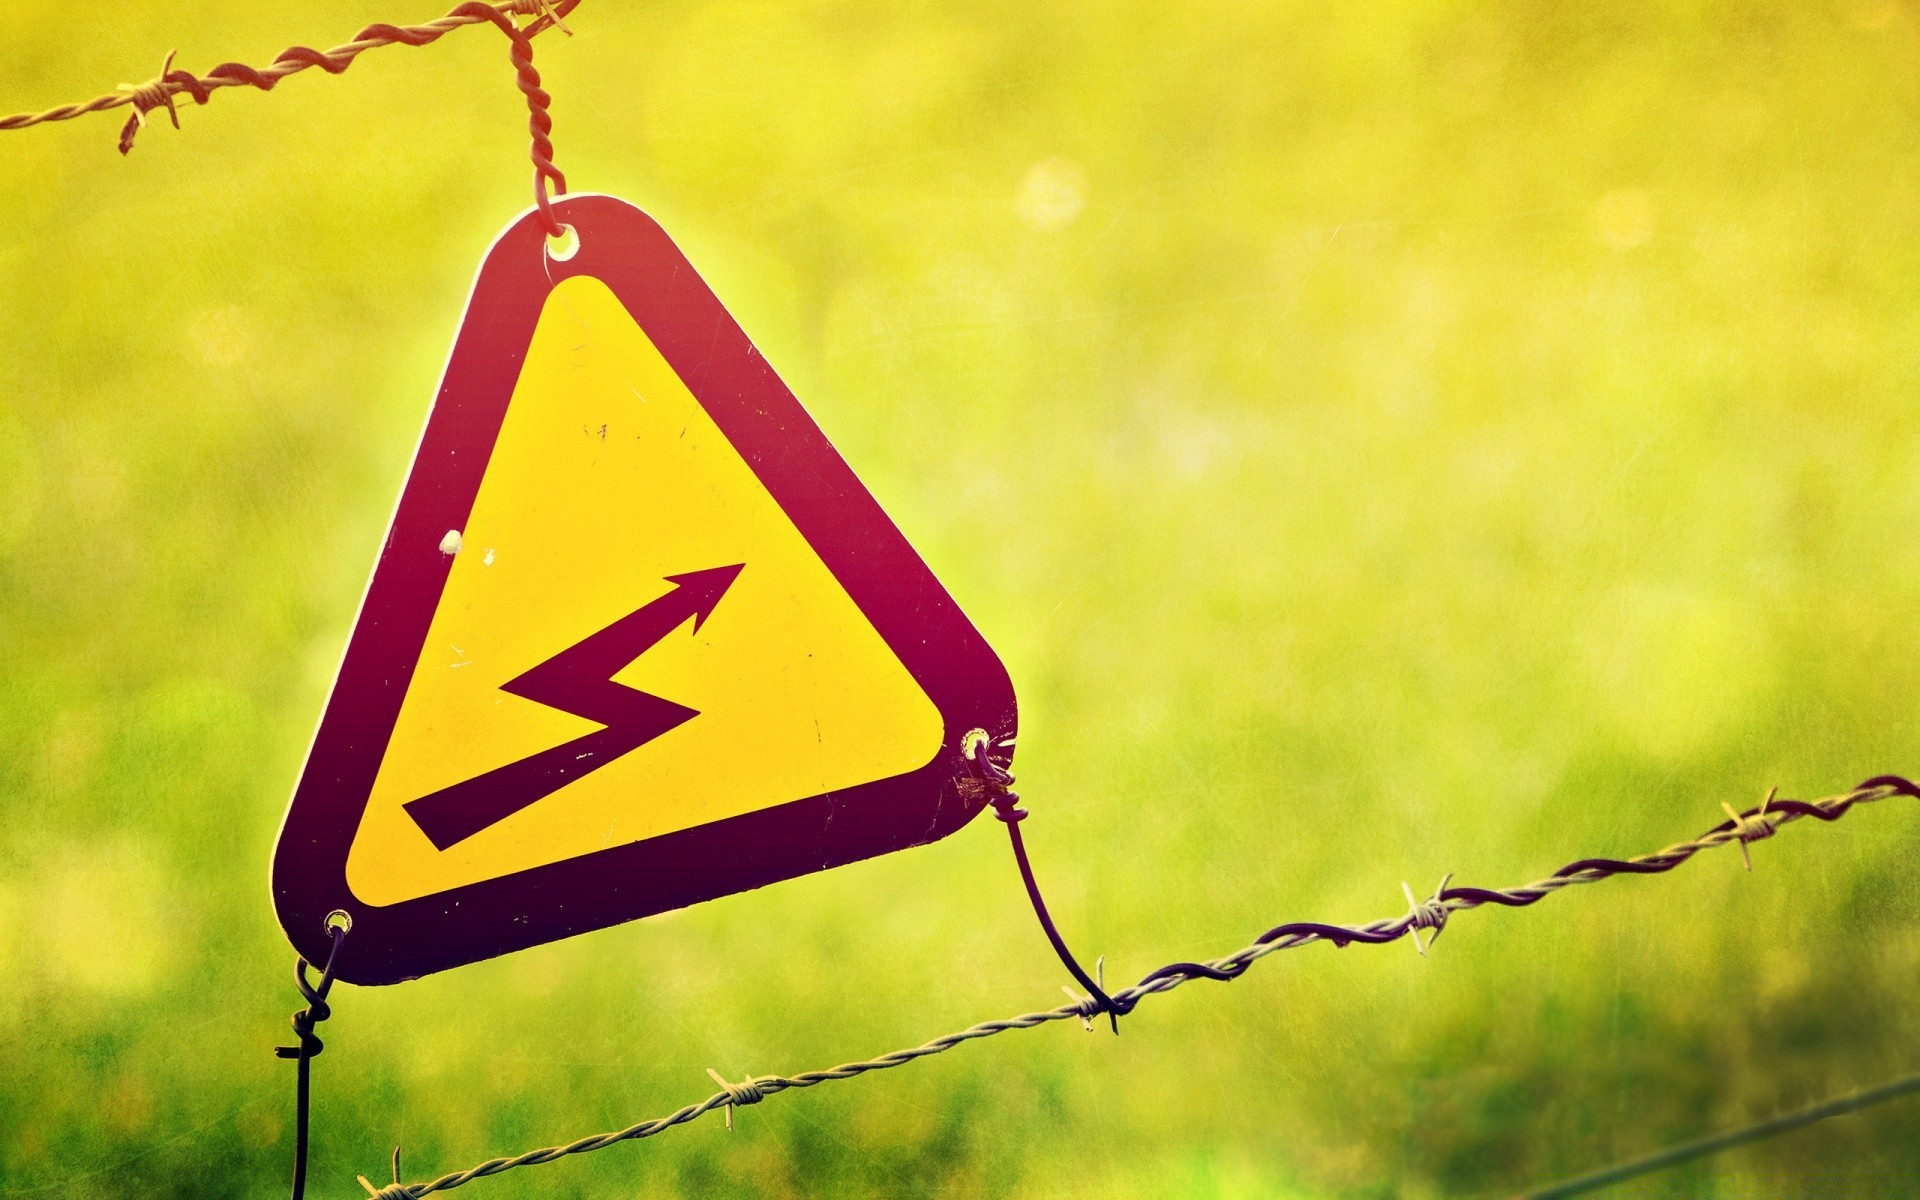 Electricity Warning Sign Free Wallpapers